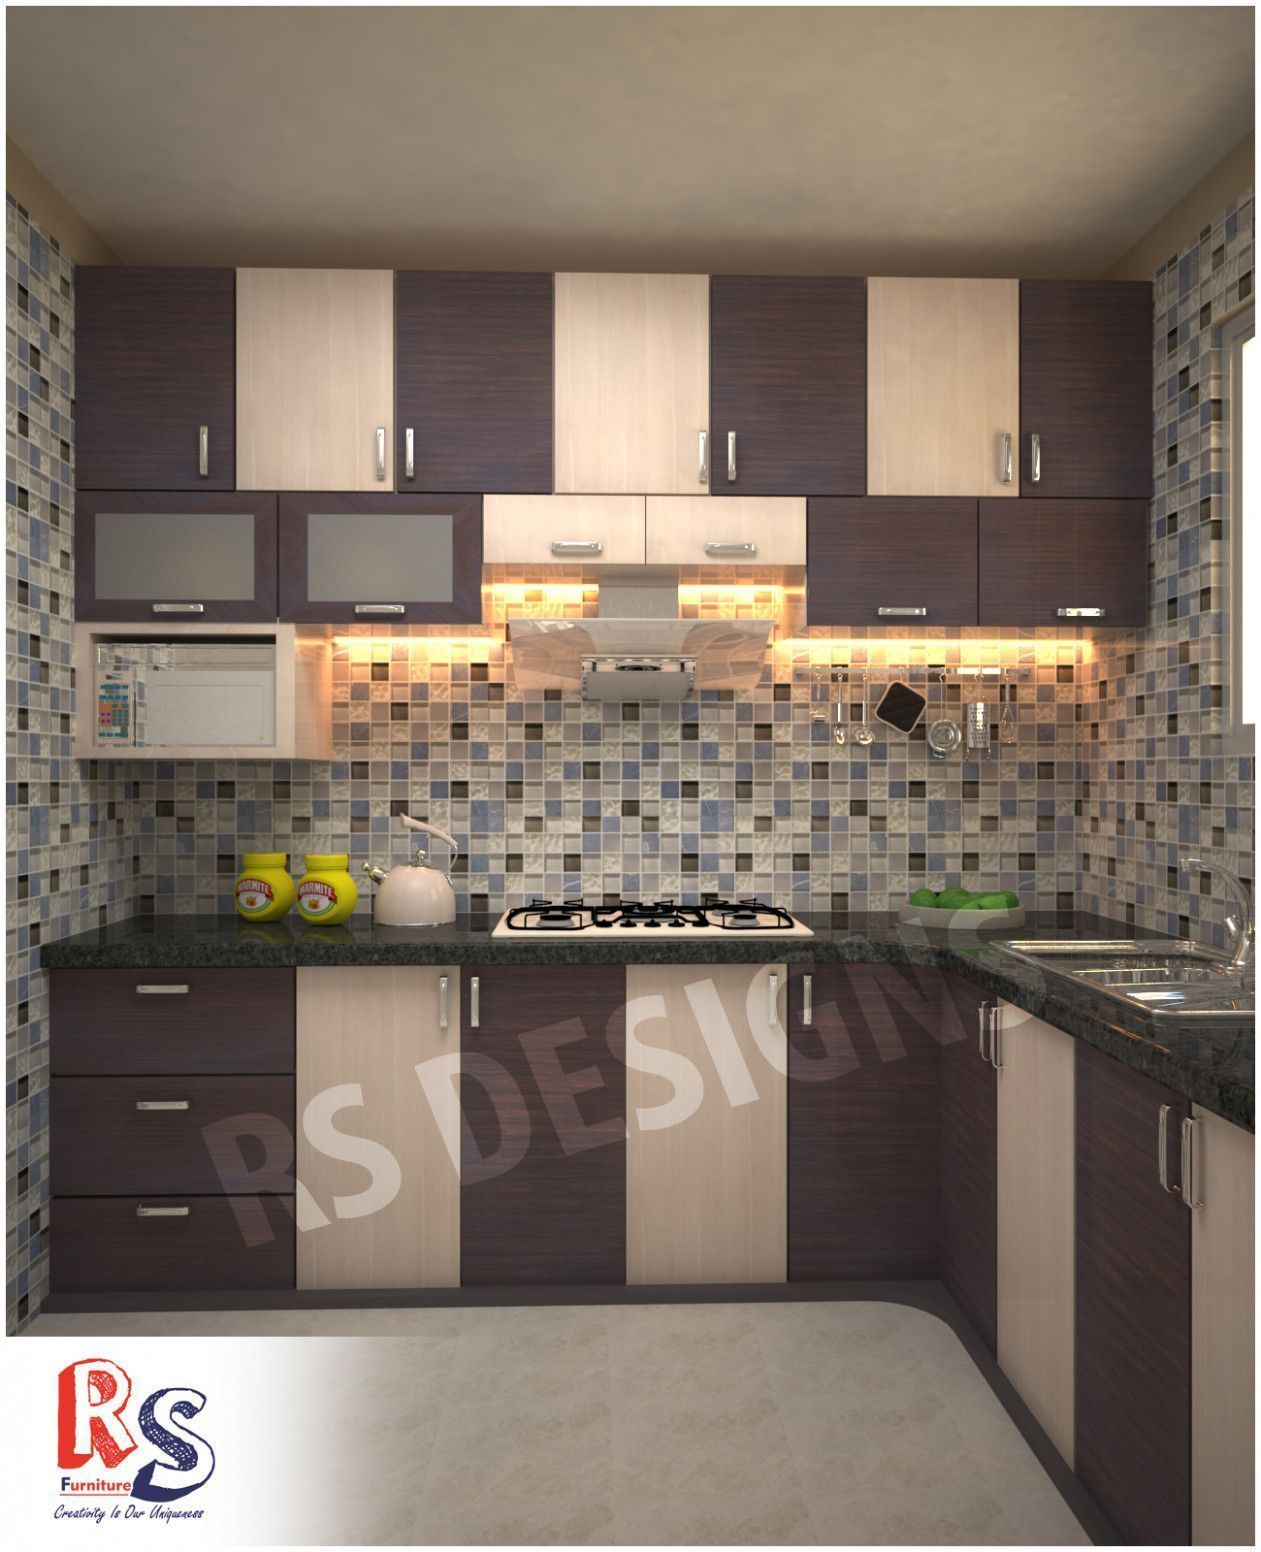 Indian Modular Kitchen Design Ideas Kitchen Wall Design Kitchen Tiles Design Kitchen Wall Tiles Design